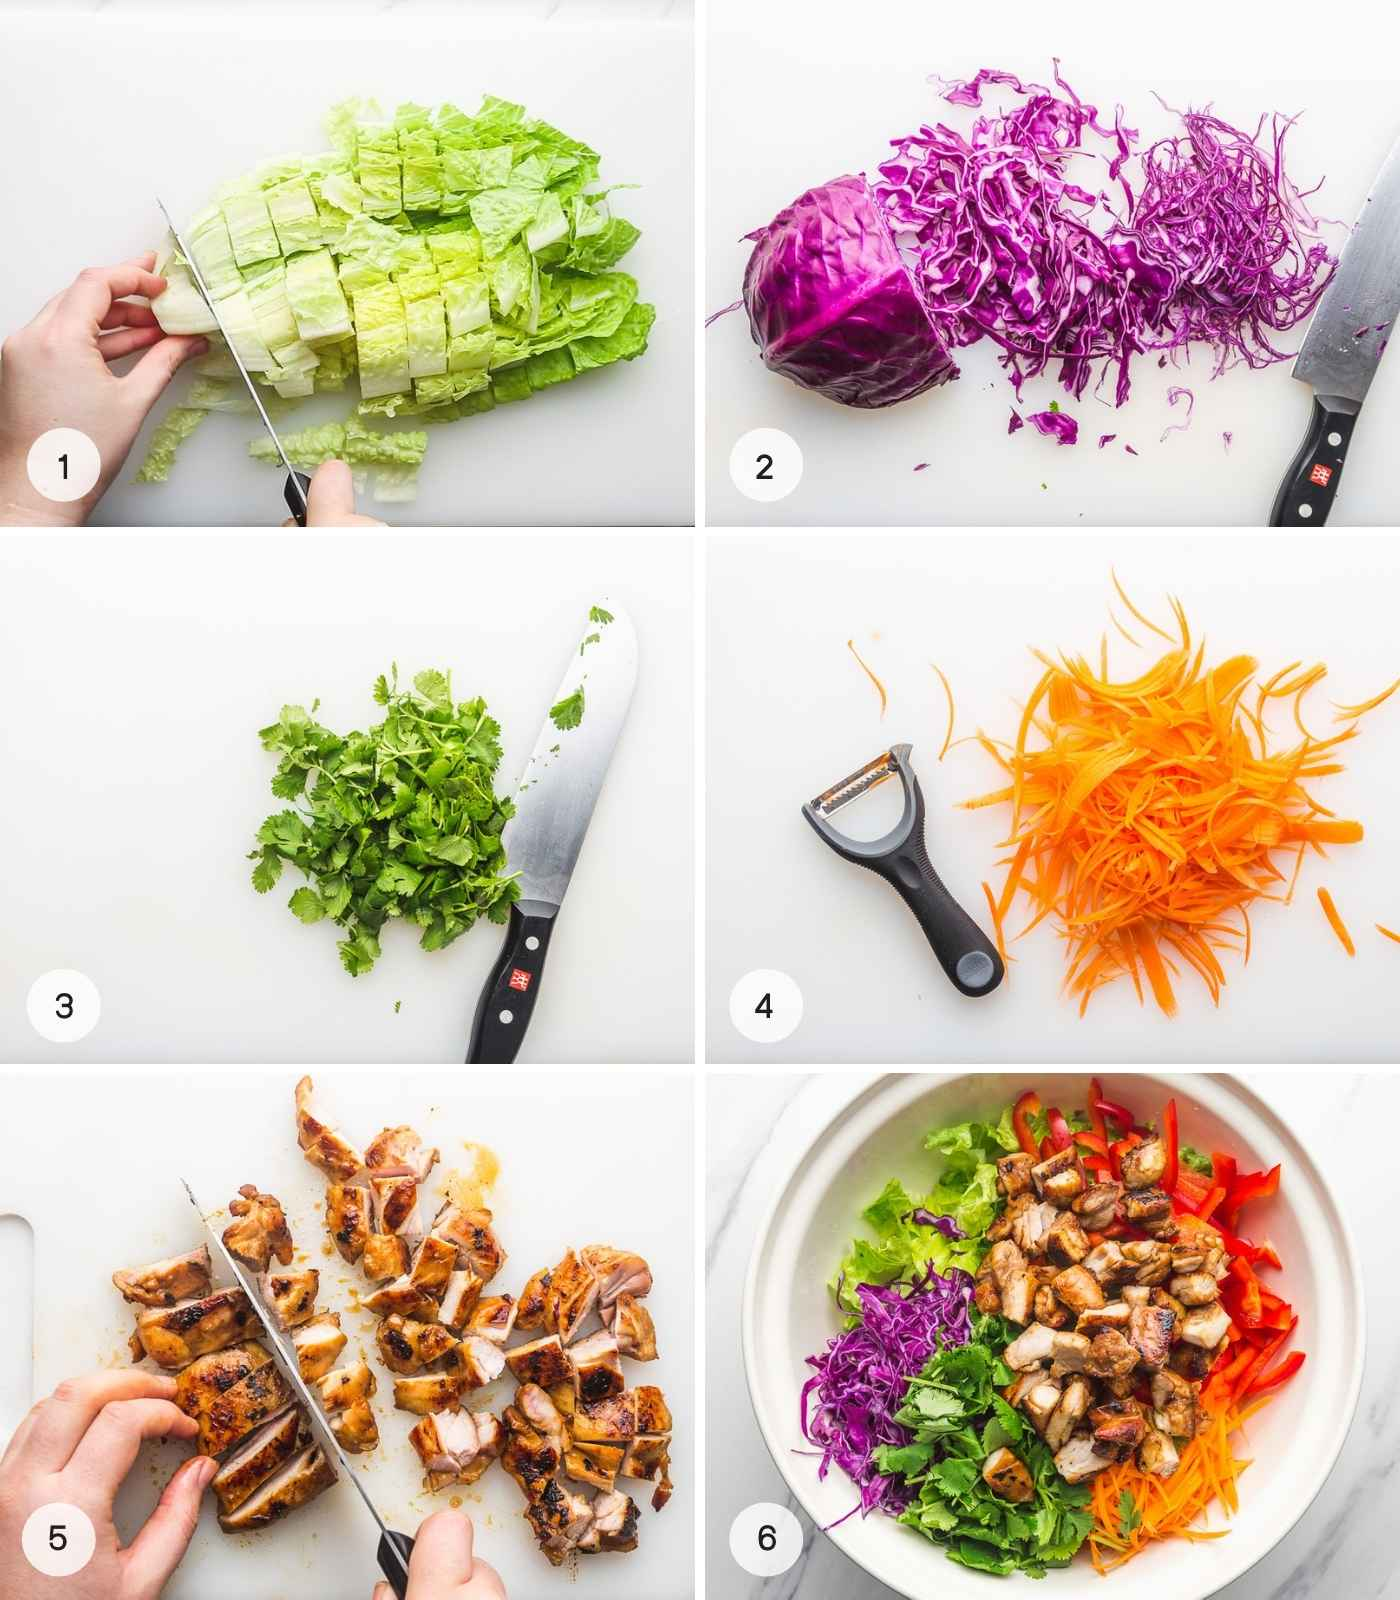 A collage with 6 images on how to make Asian chicken salad, from shredding the vegetables to chopping the chicken and making the salad.